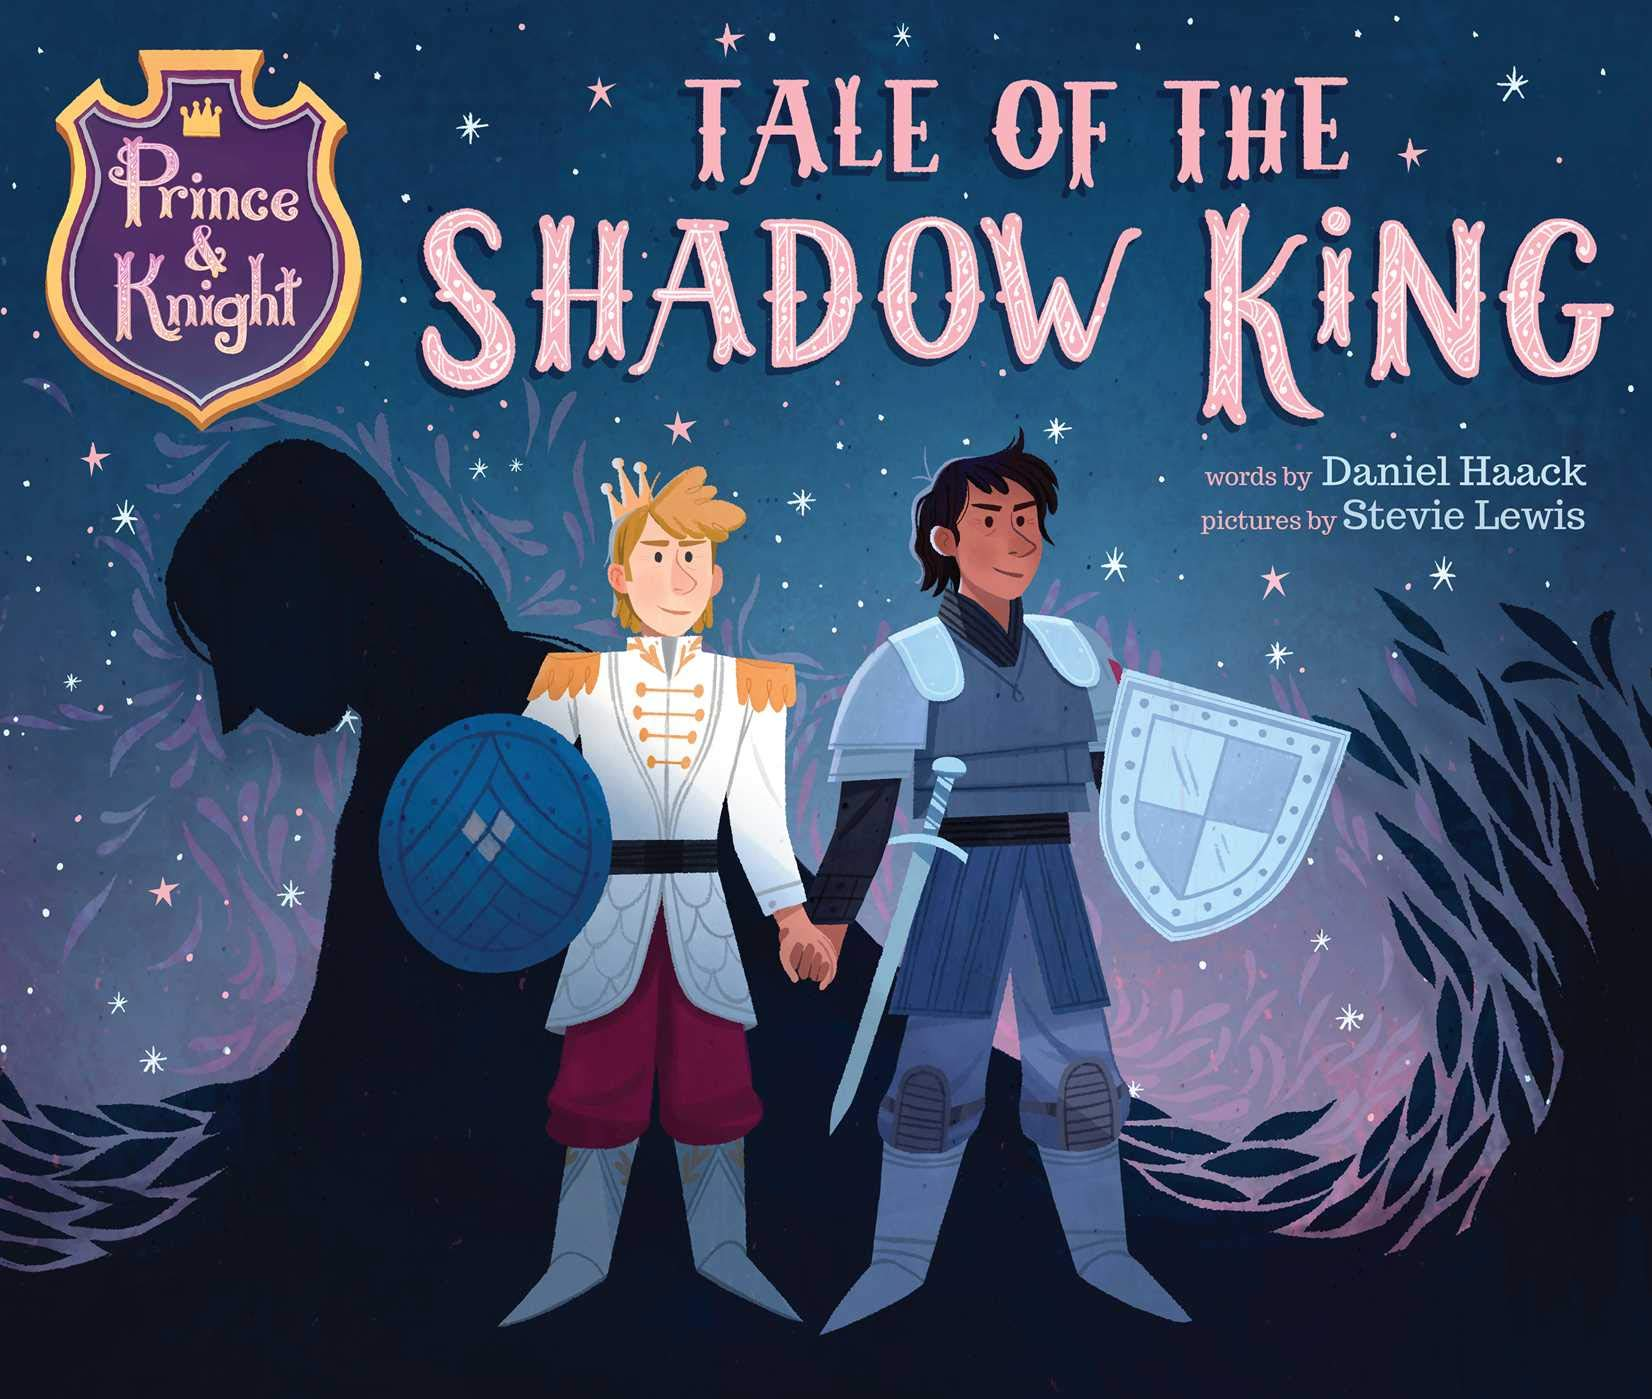 Prince & Knight: Tale of the Shadow King: Haack, Daniel, Lewis, Stevie:  9781499811216: Amazon.com: Books